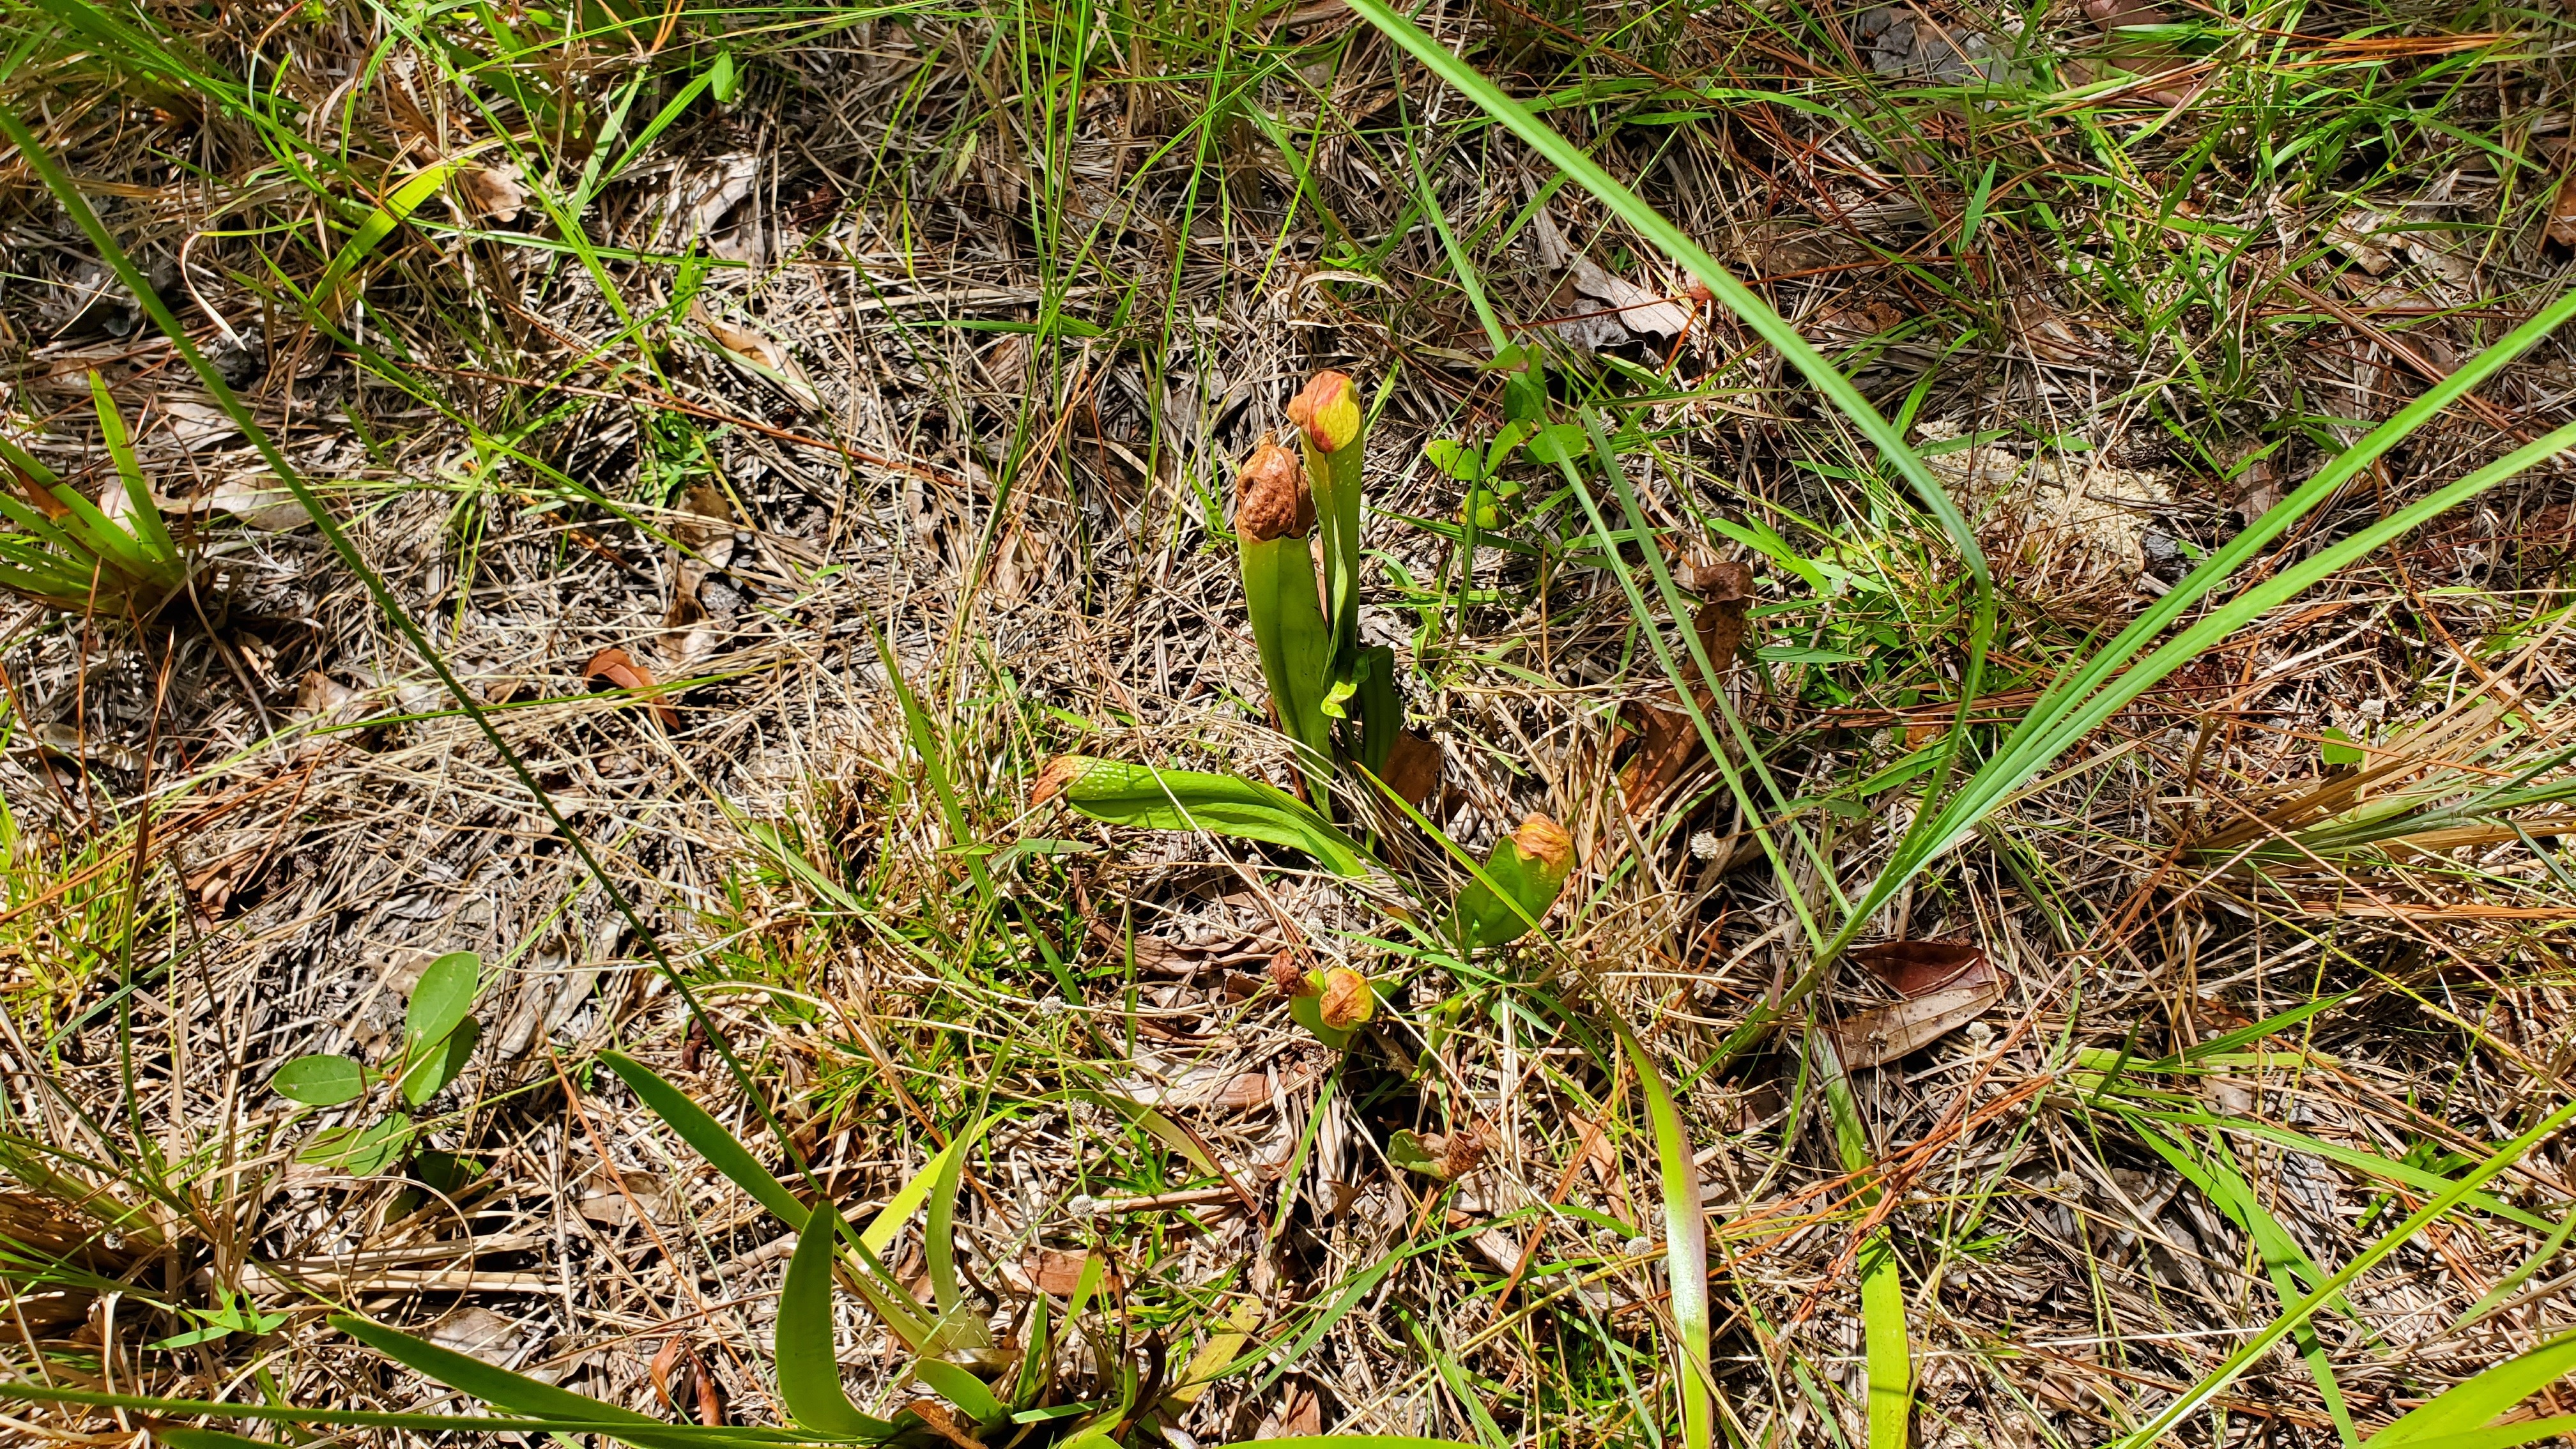 4032x2268 Bunch, Pitcher plants, in Johnsons with okra, corn, and pitcher plants, by John S. Quarterman, for OkraParadiseFarms.com, 24 June 2019